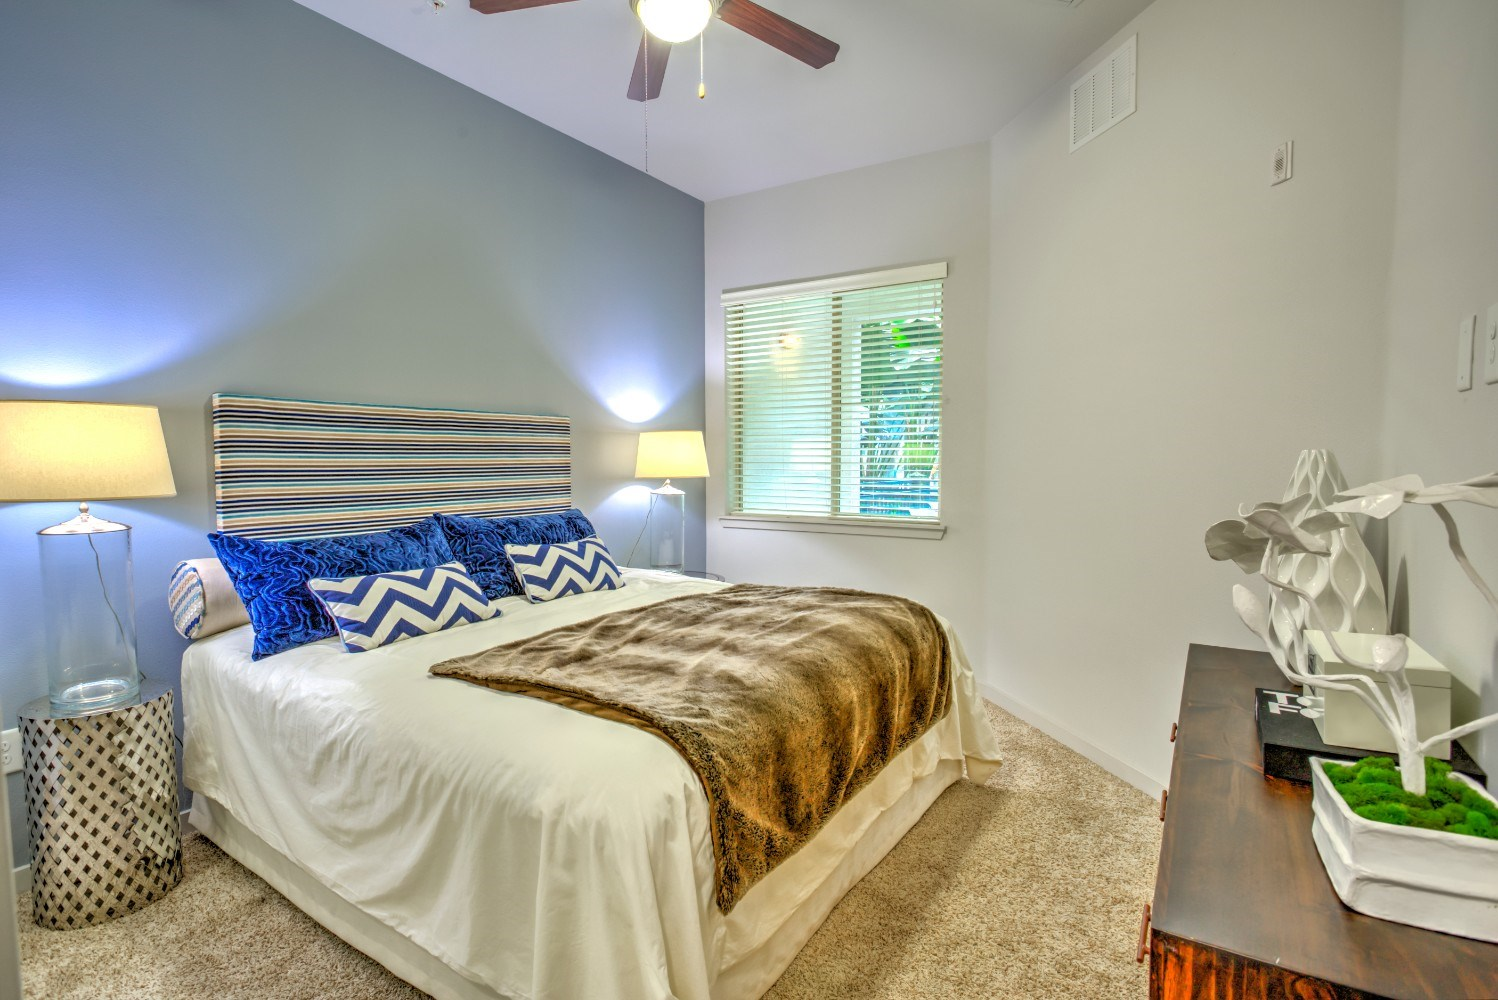 Cozy bedrooms at Accent apartments, 5550 Grosvenor Blvd, 90066